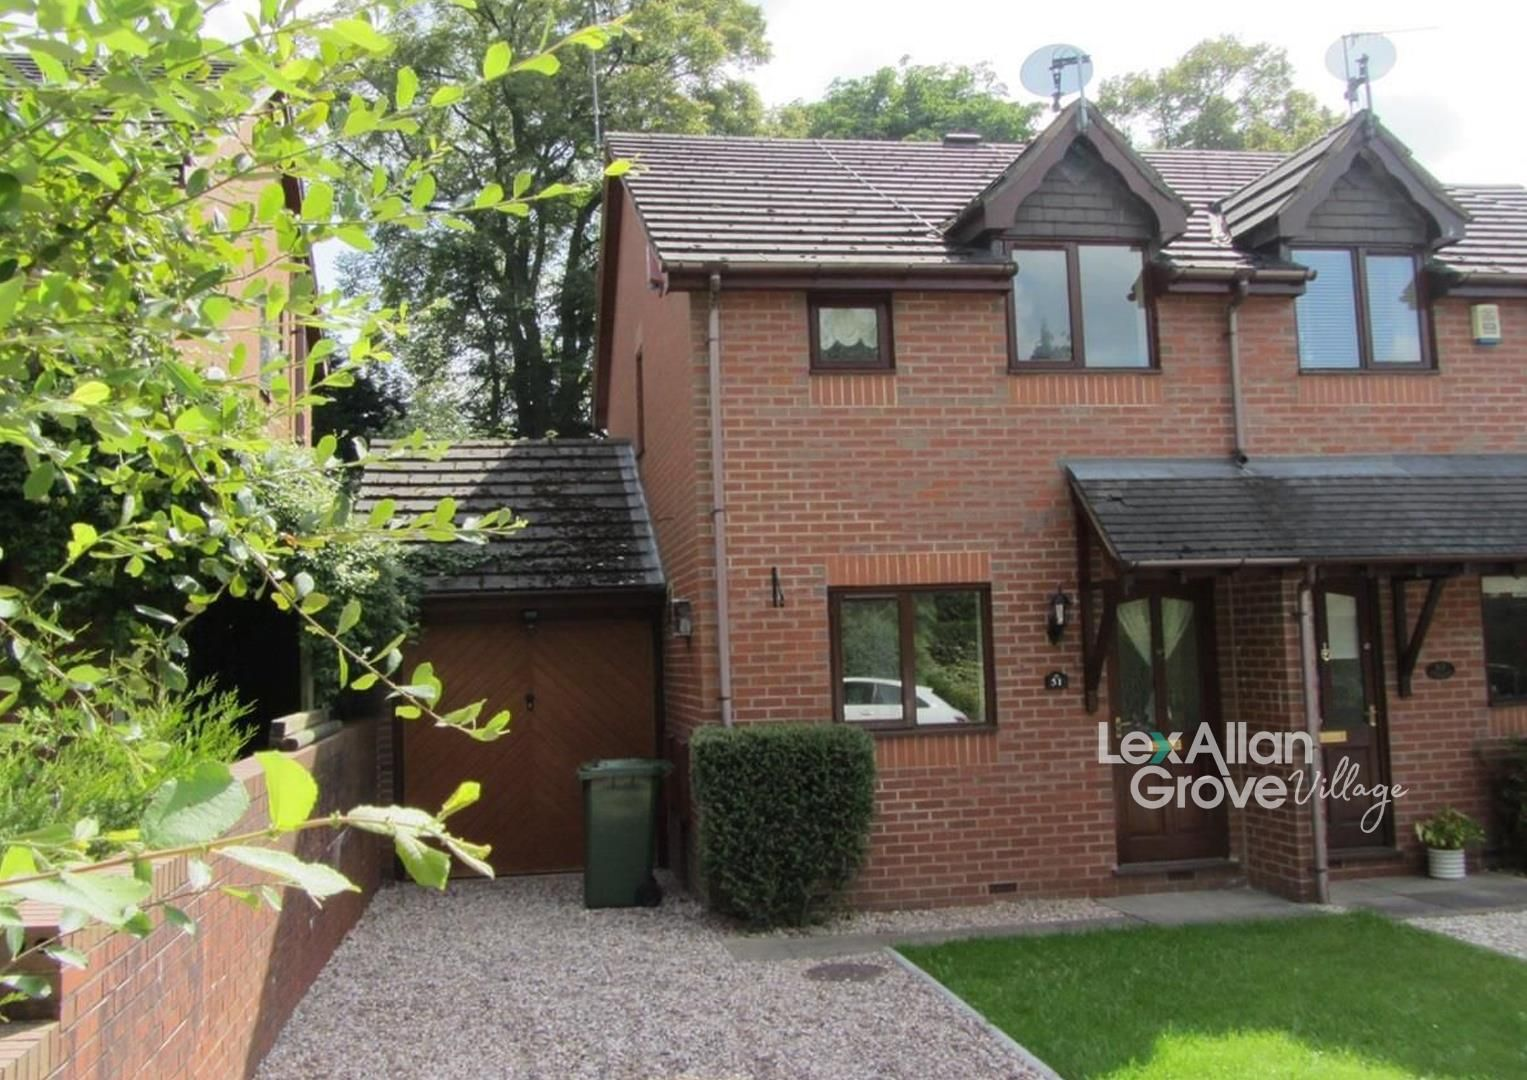 2 bed semi-detached for sale in Blakedown, DY10